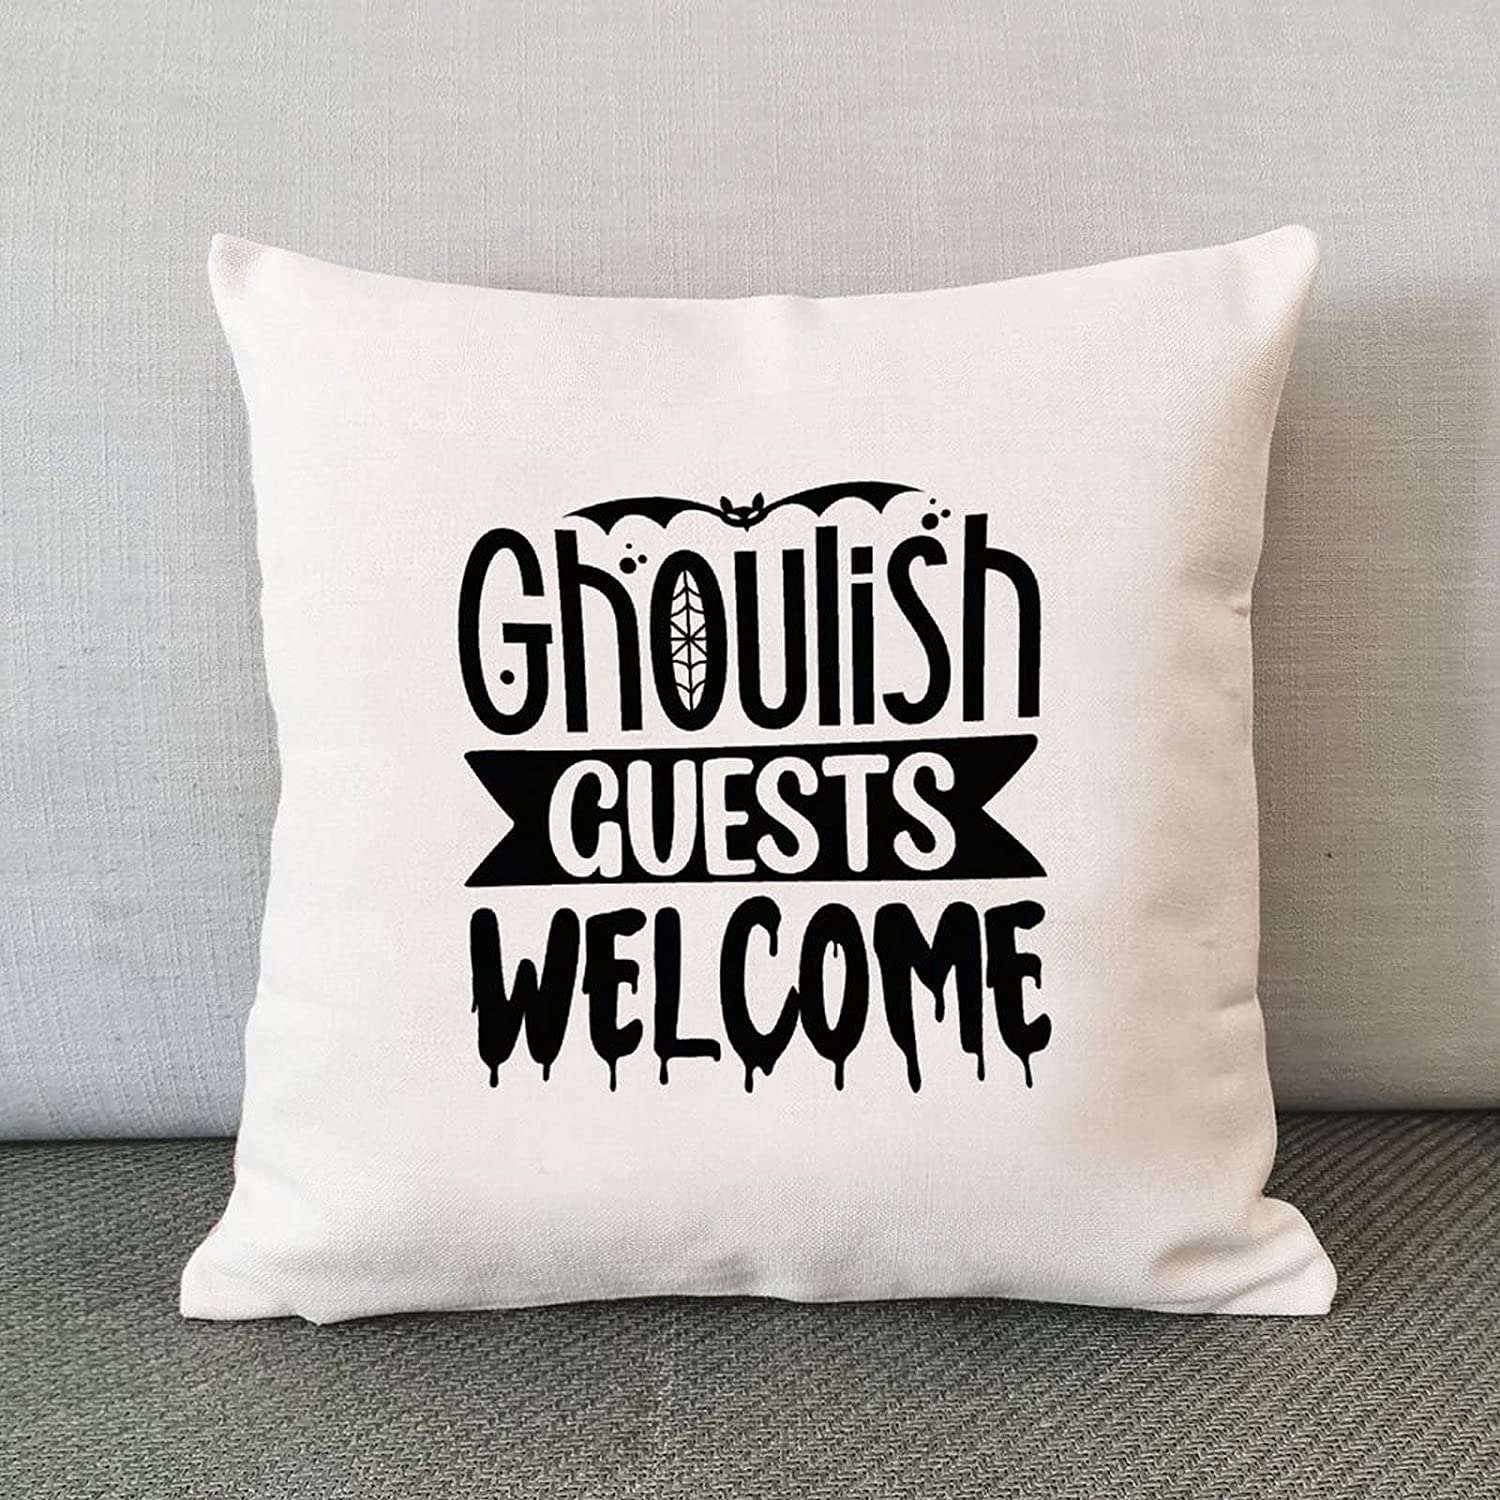 Halloween Throw Ranking TOP18 Pillow Cover Cheap mail order shopping Ghoulish Cov Cushion Guests Welcome